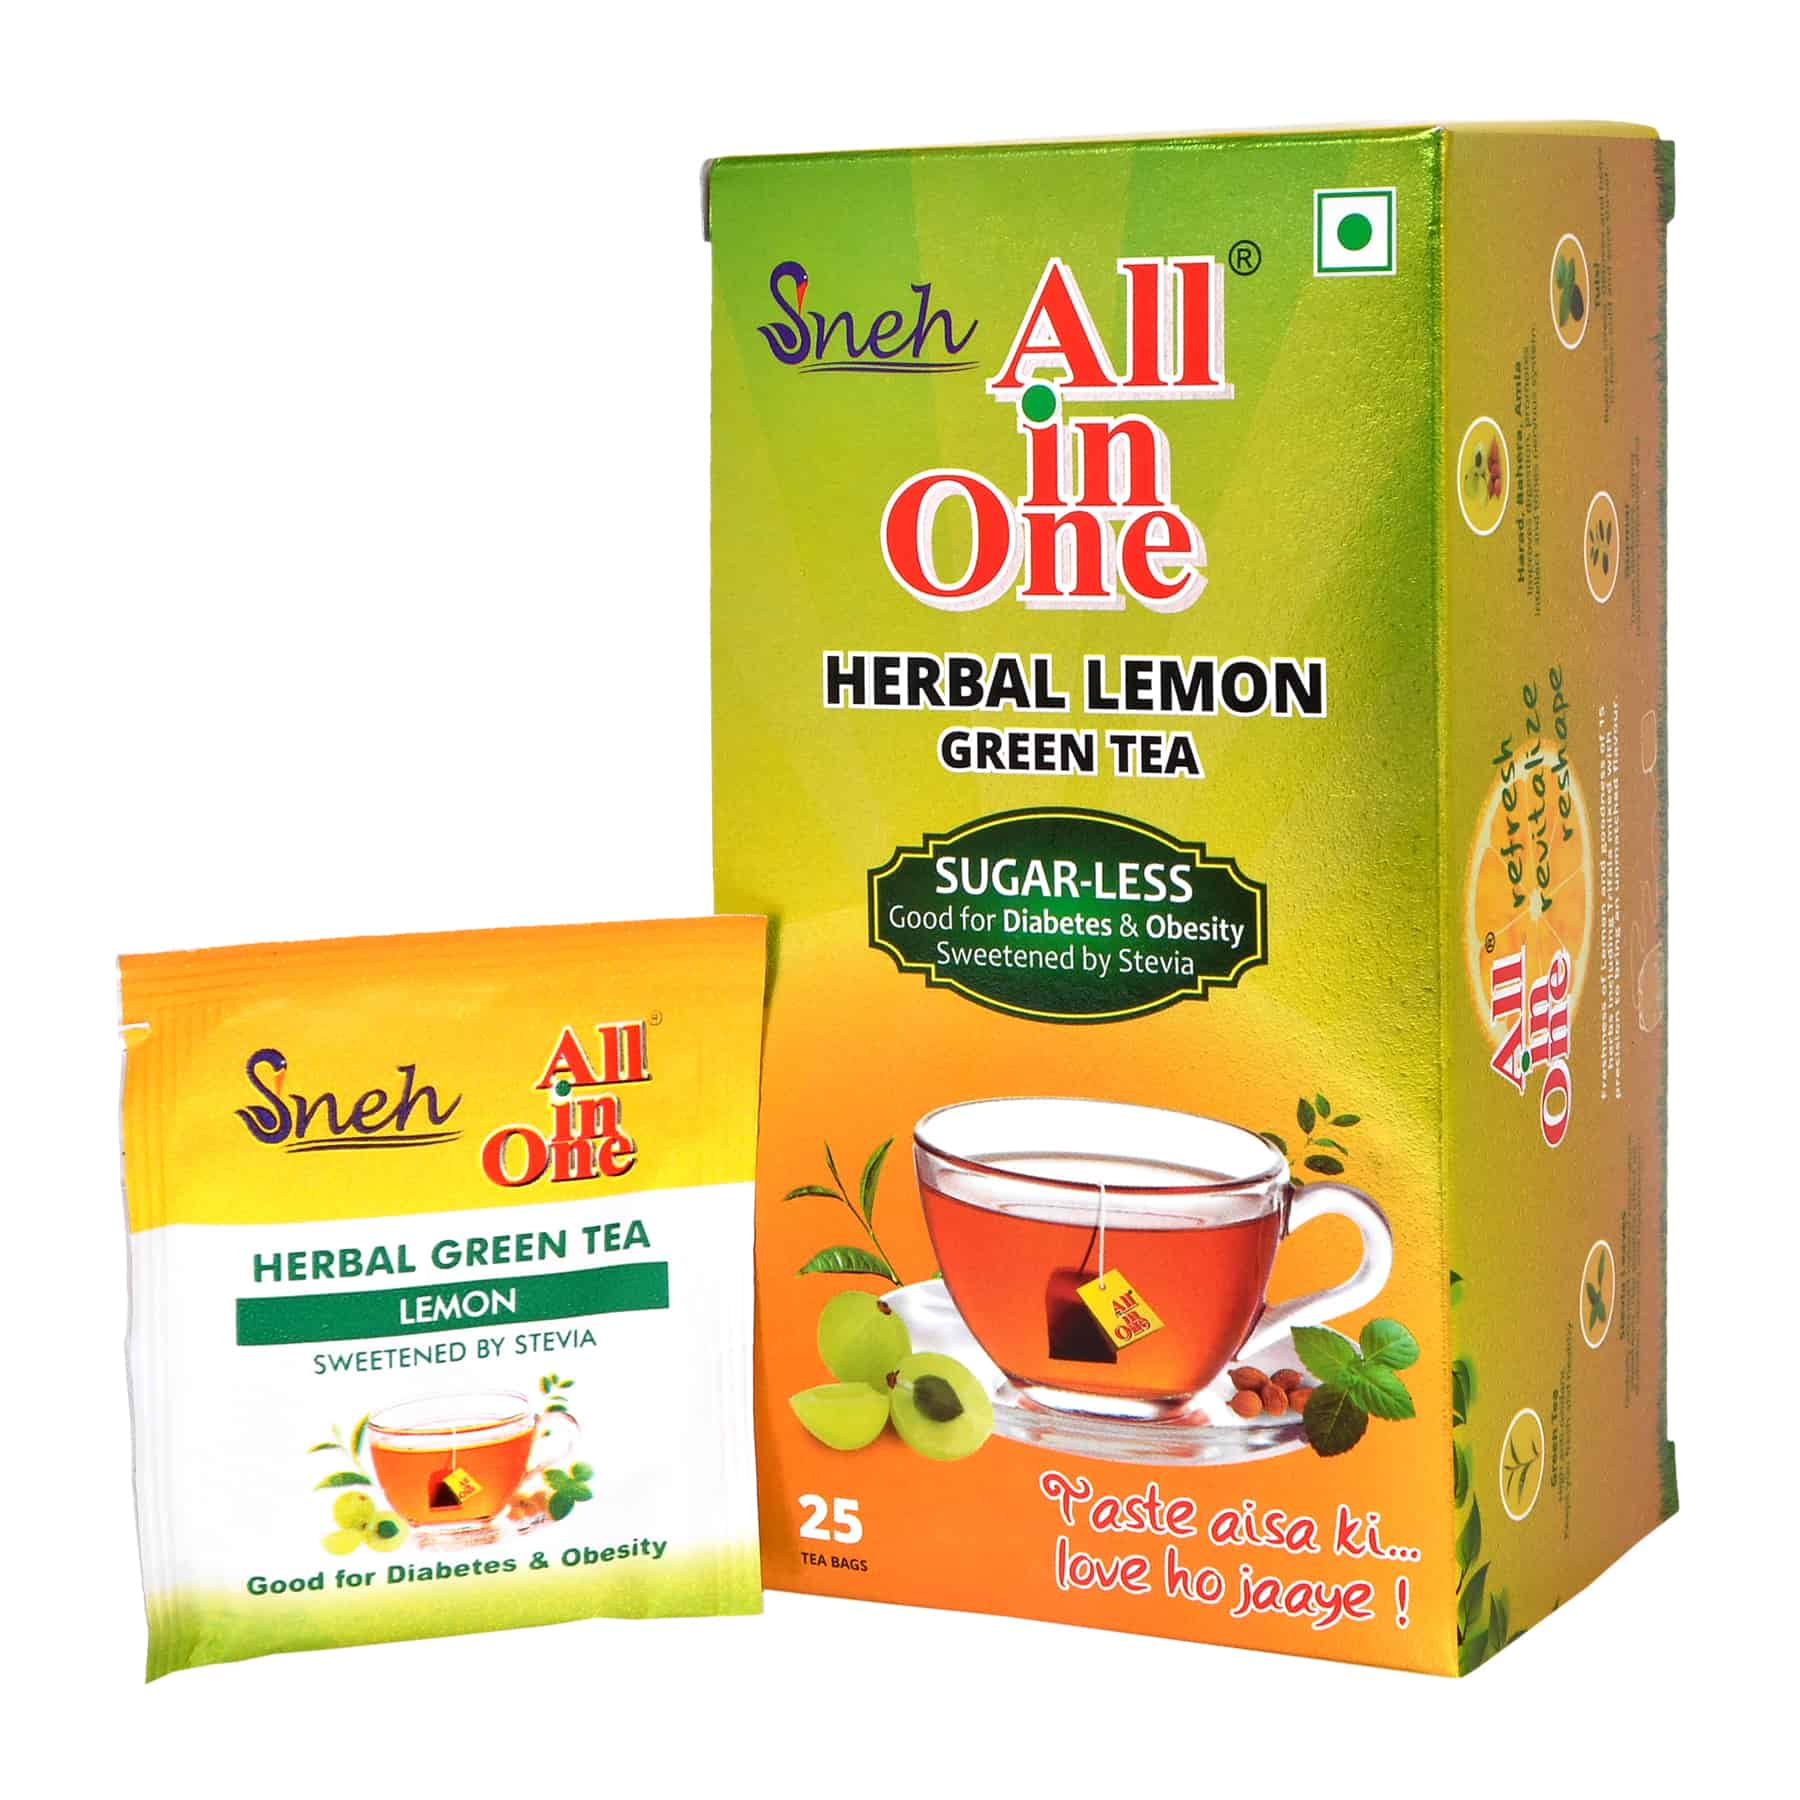 SNEH- Herbal Lemon Green Tea (Sugar less sweetened with Stevia)- Pack of 8